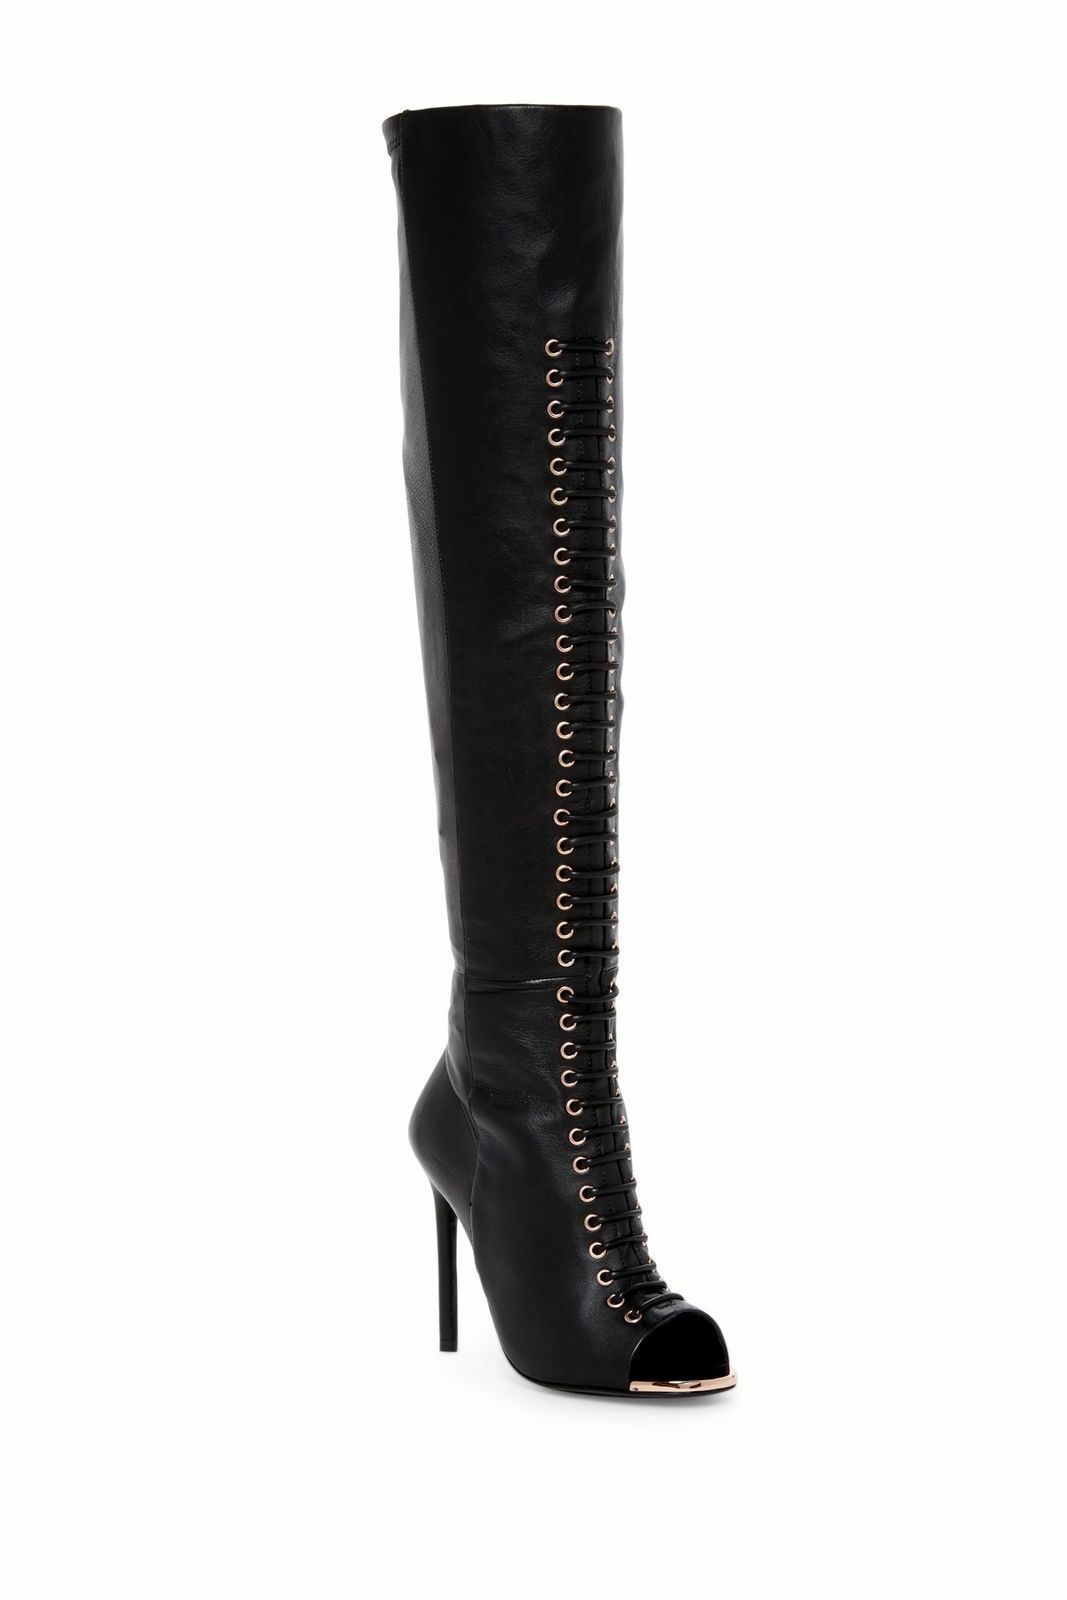 Ivy Kirzhner Crane Black Stretch Calf Leather Fitted Peep Toe Over-the-Knee Boot